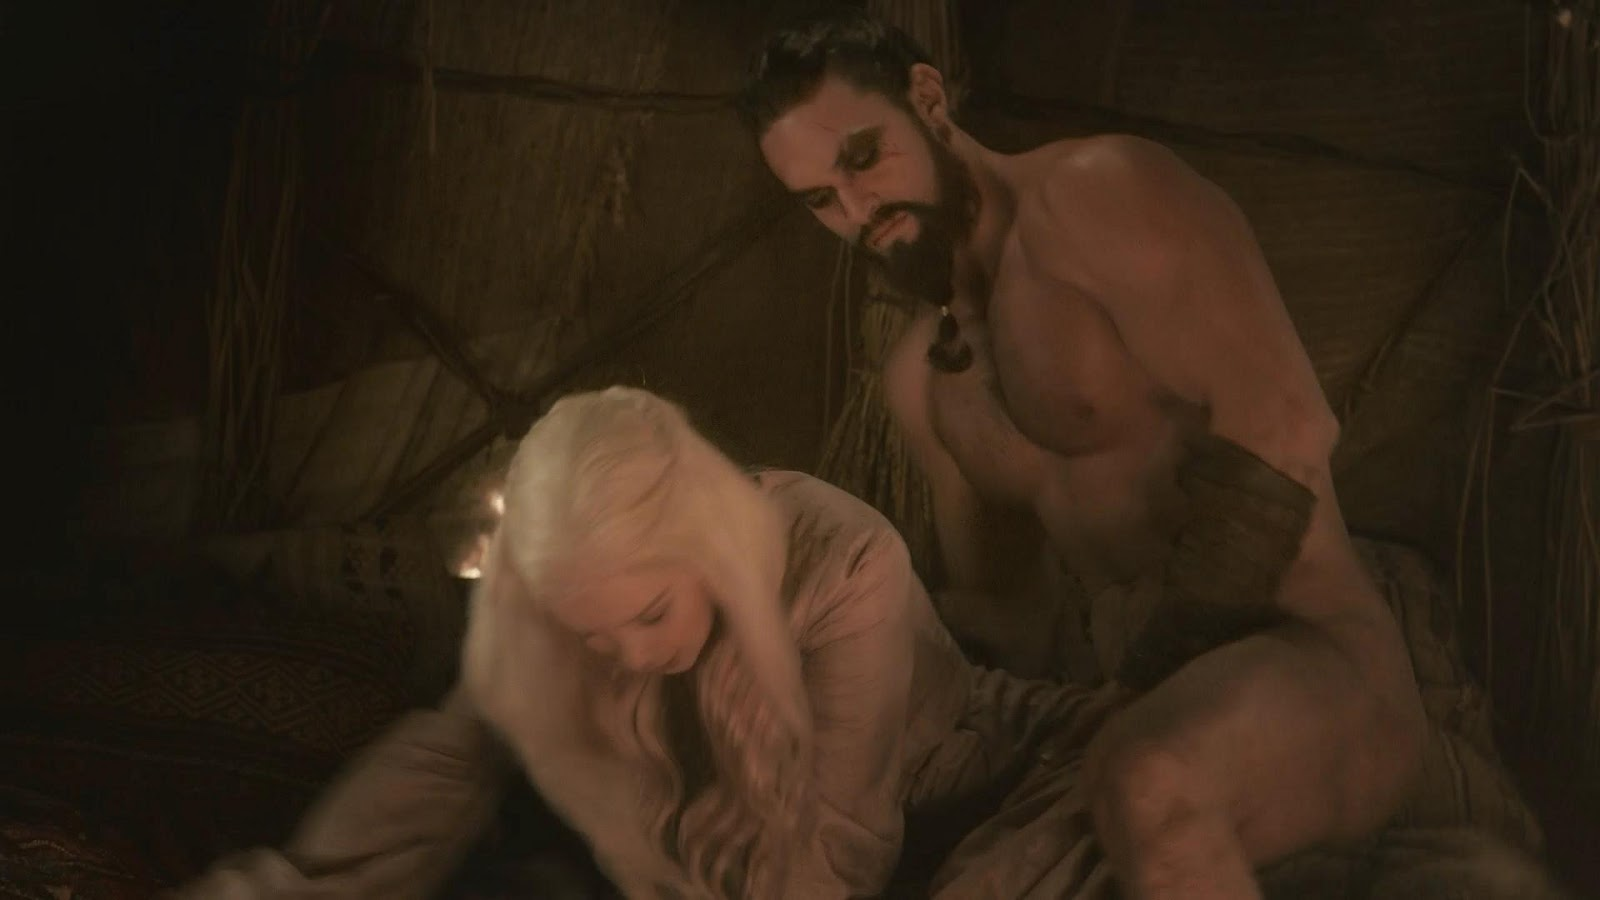 Opinion Jason momoa game of thrones nude remarkable, very